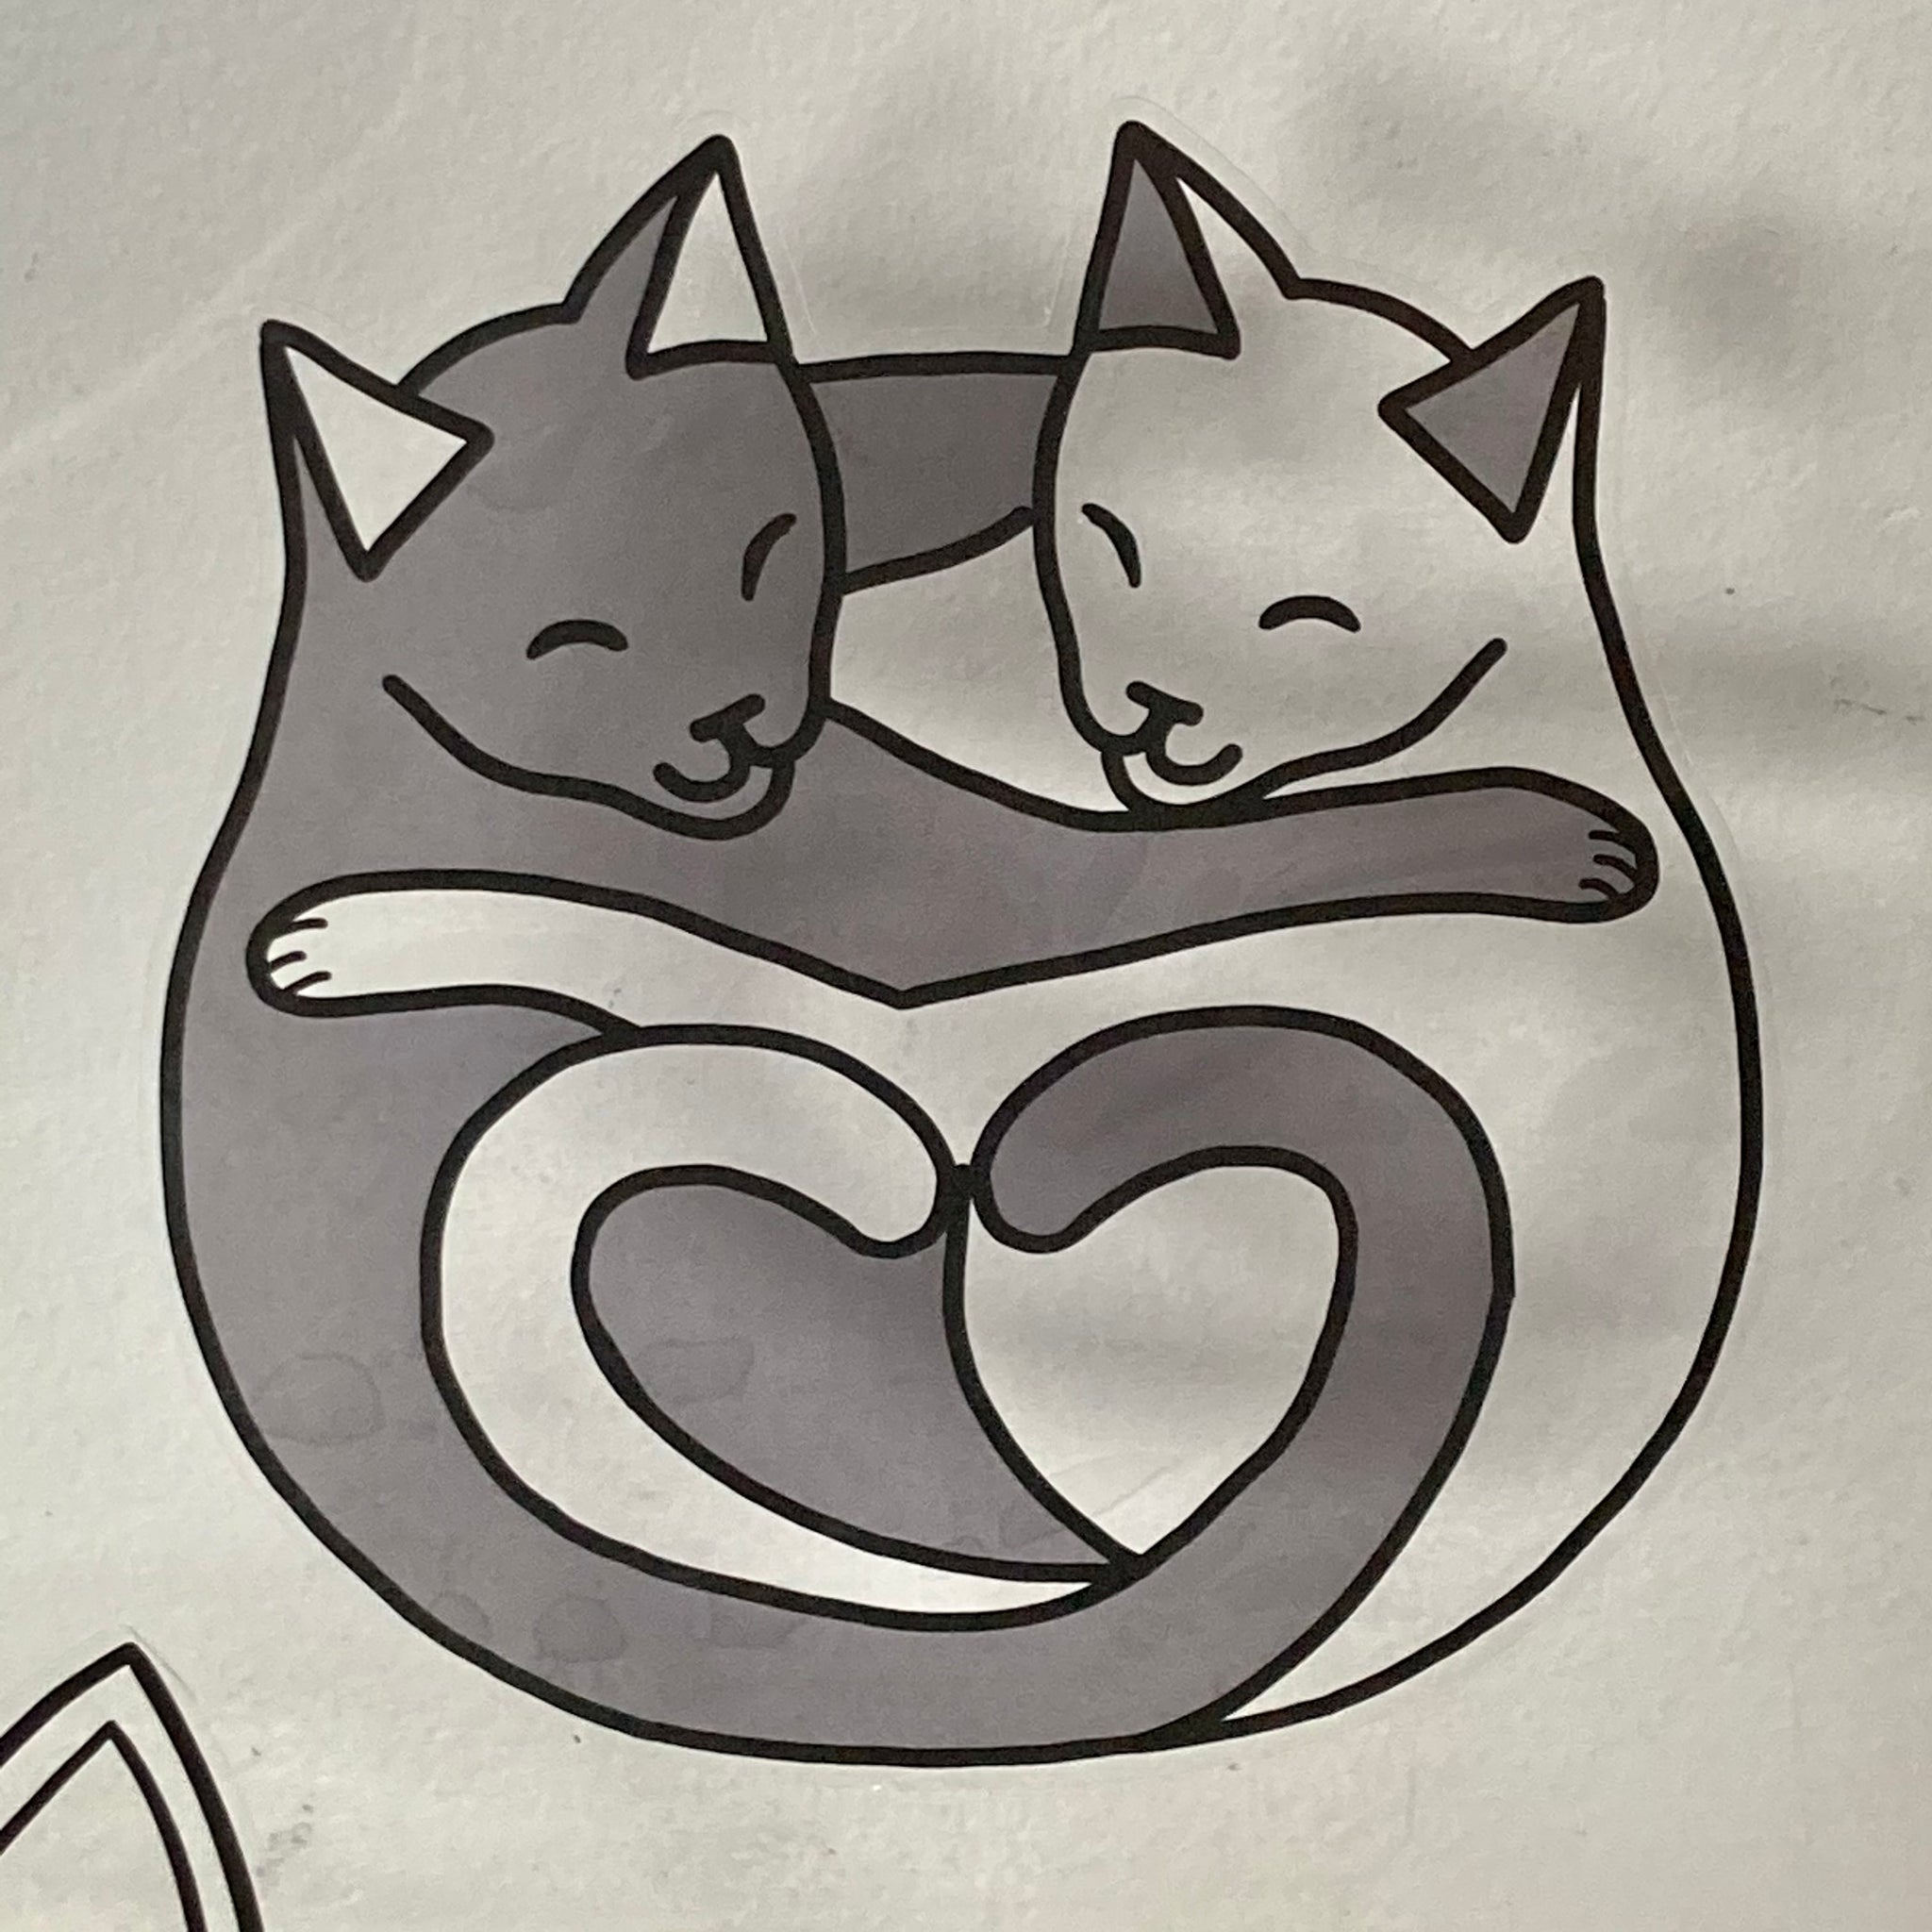 Big Transparent Cuddling Cats Sticker